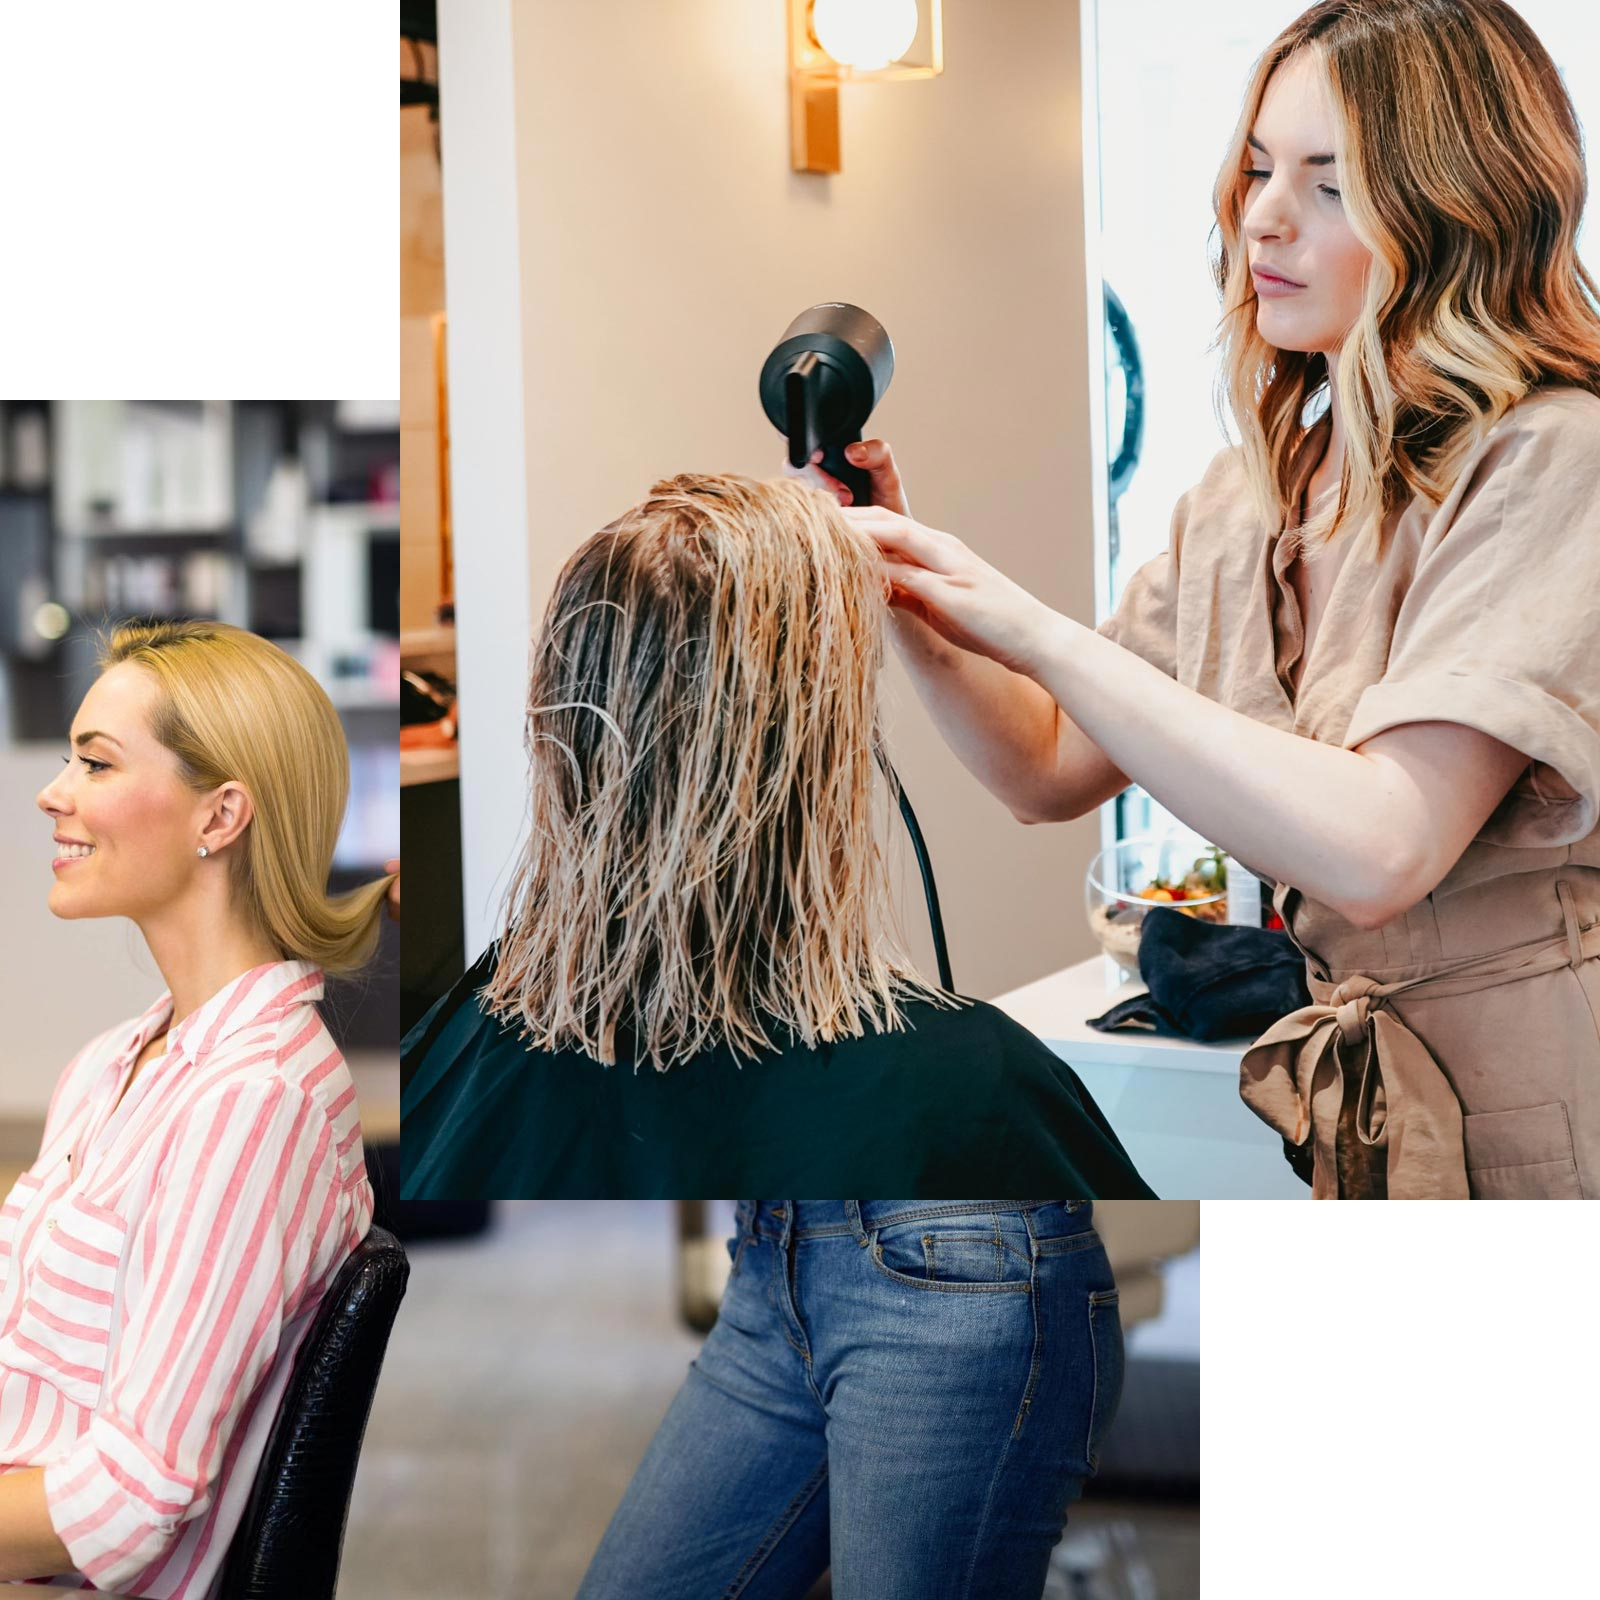 Hairdresser with Brown Hair and Blonde Highlights Wearing a Brown Dress Blow Drying Customer's Wet Hair with Blonde Streaks